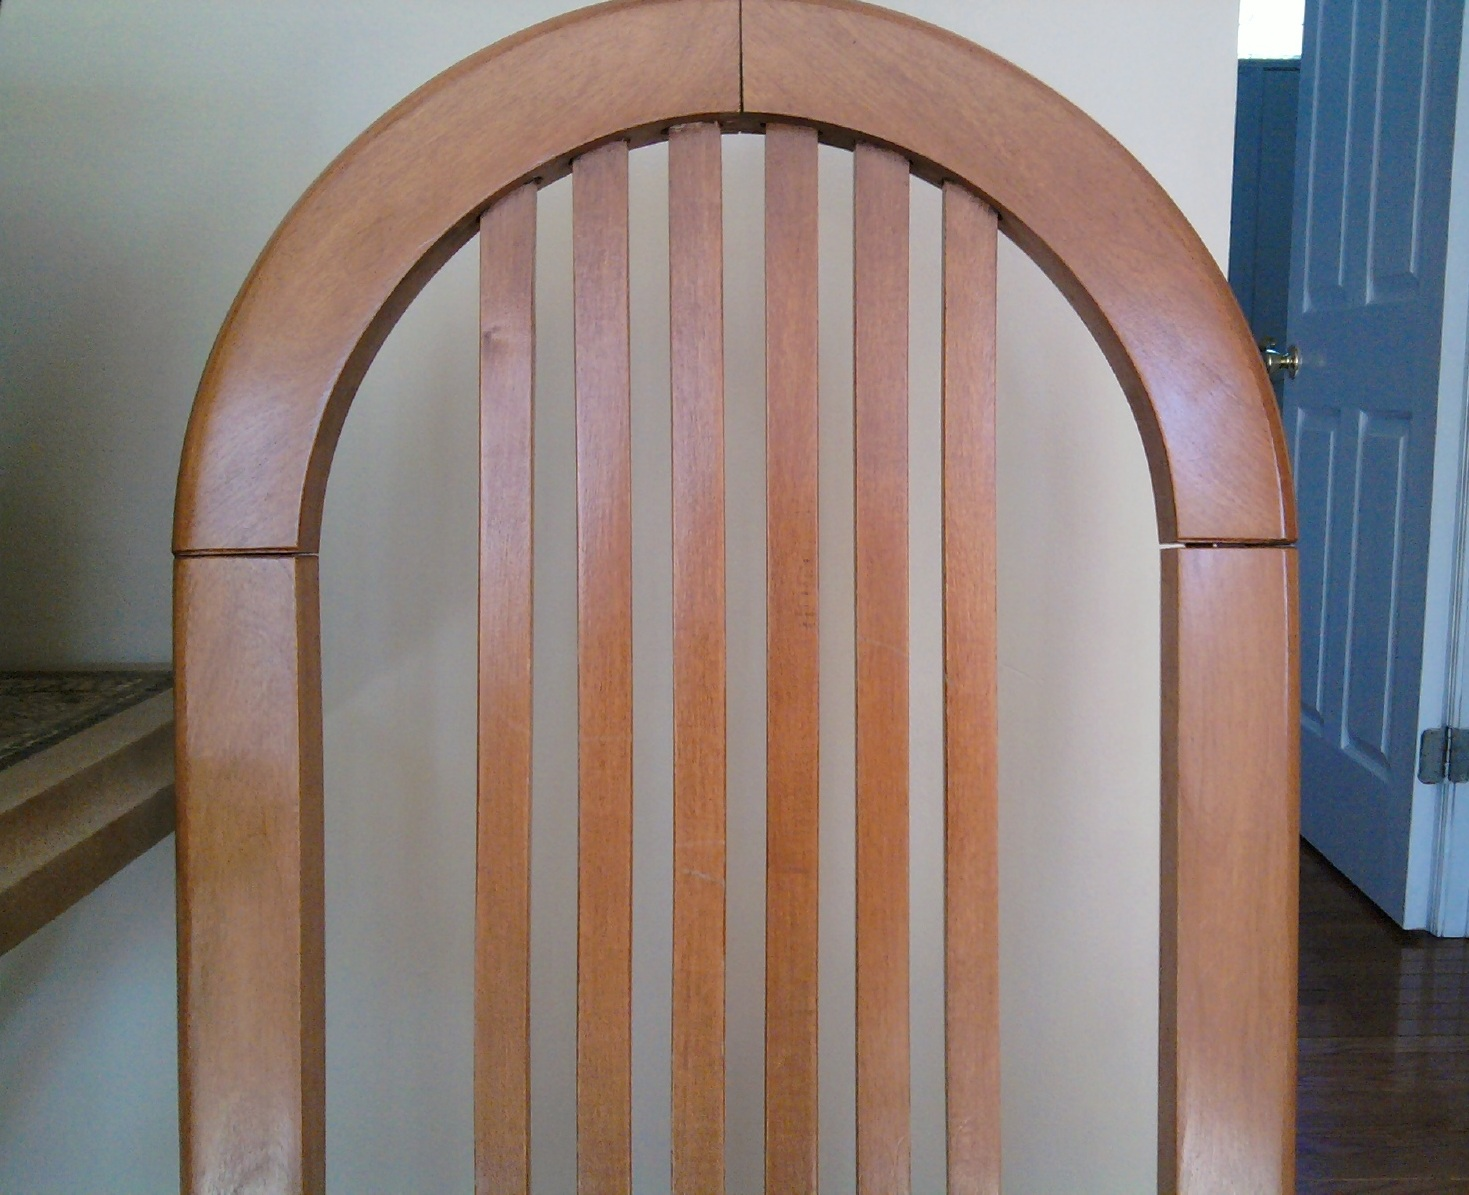 Superb img of Scratch Repair for Wood Chairs & Rails: 10 Minute Fix All About The  with #2F4967 color and 1469x1195 pixels